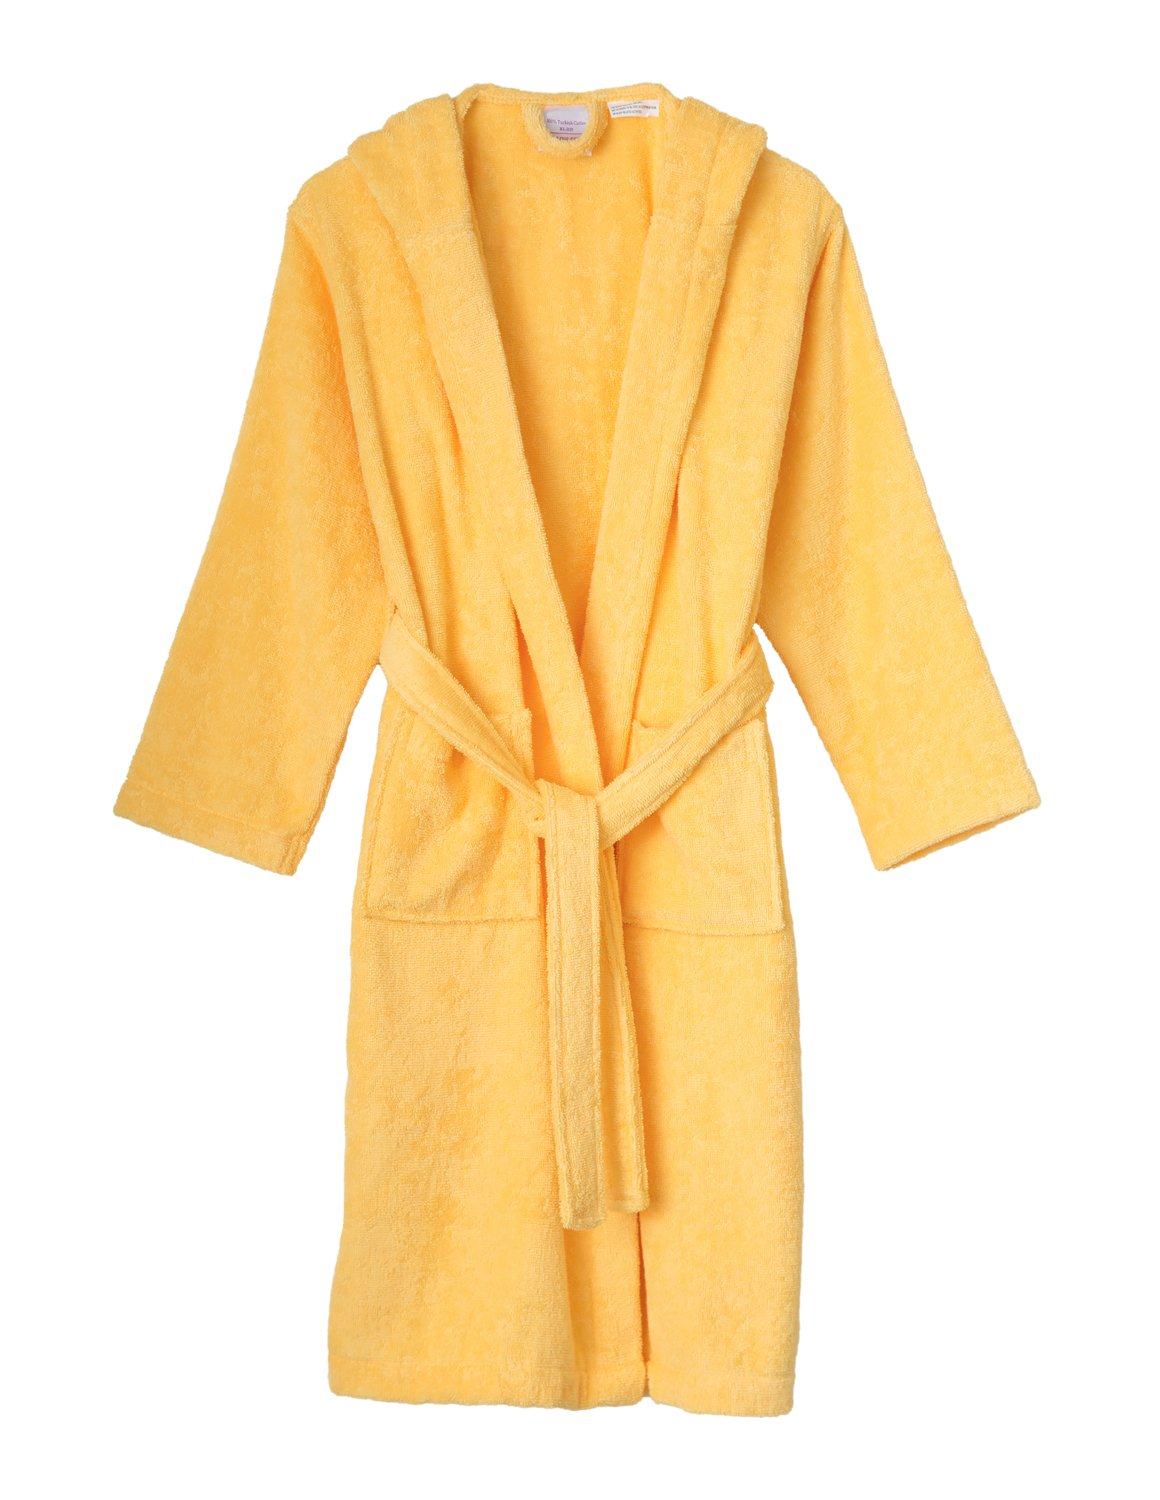 TowelSelections Big Boys' Robe, Kids Hooded Cotton Terry Bathrobe Cover-up Size 12 Banana Cream